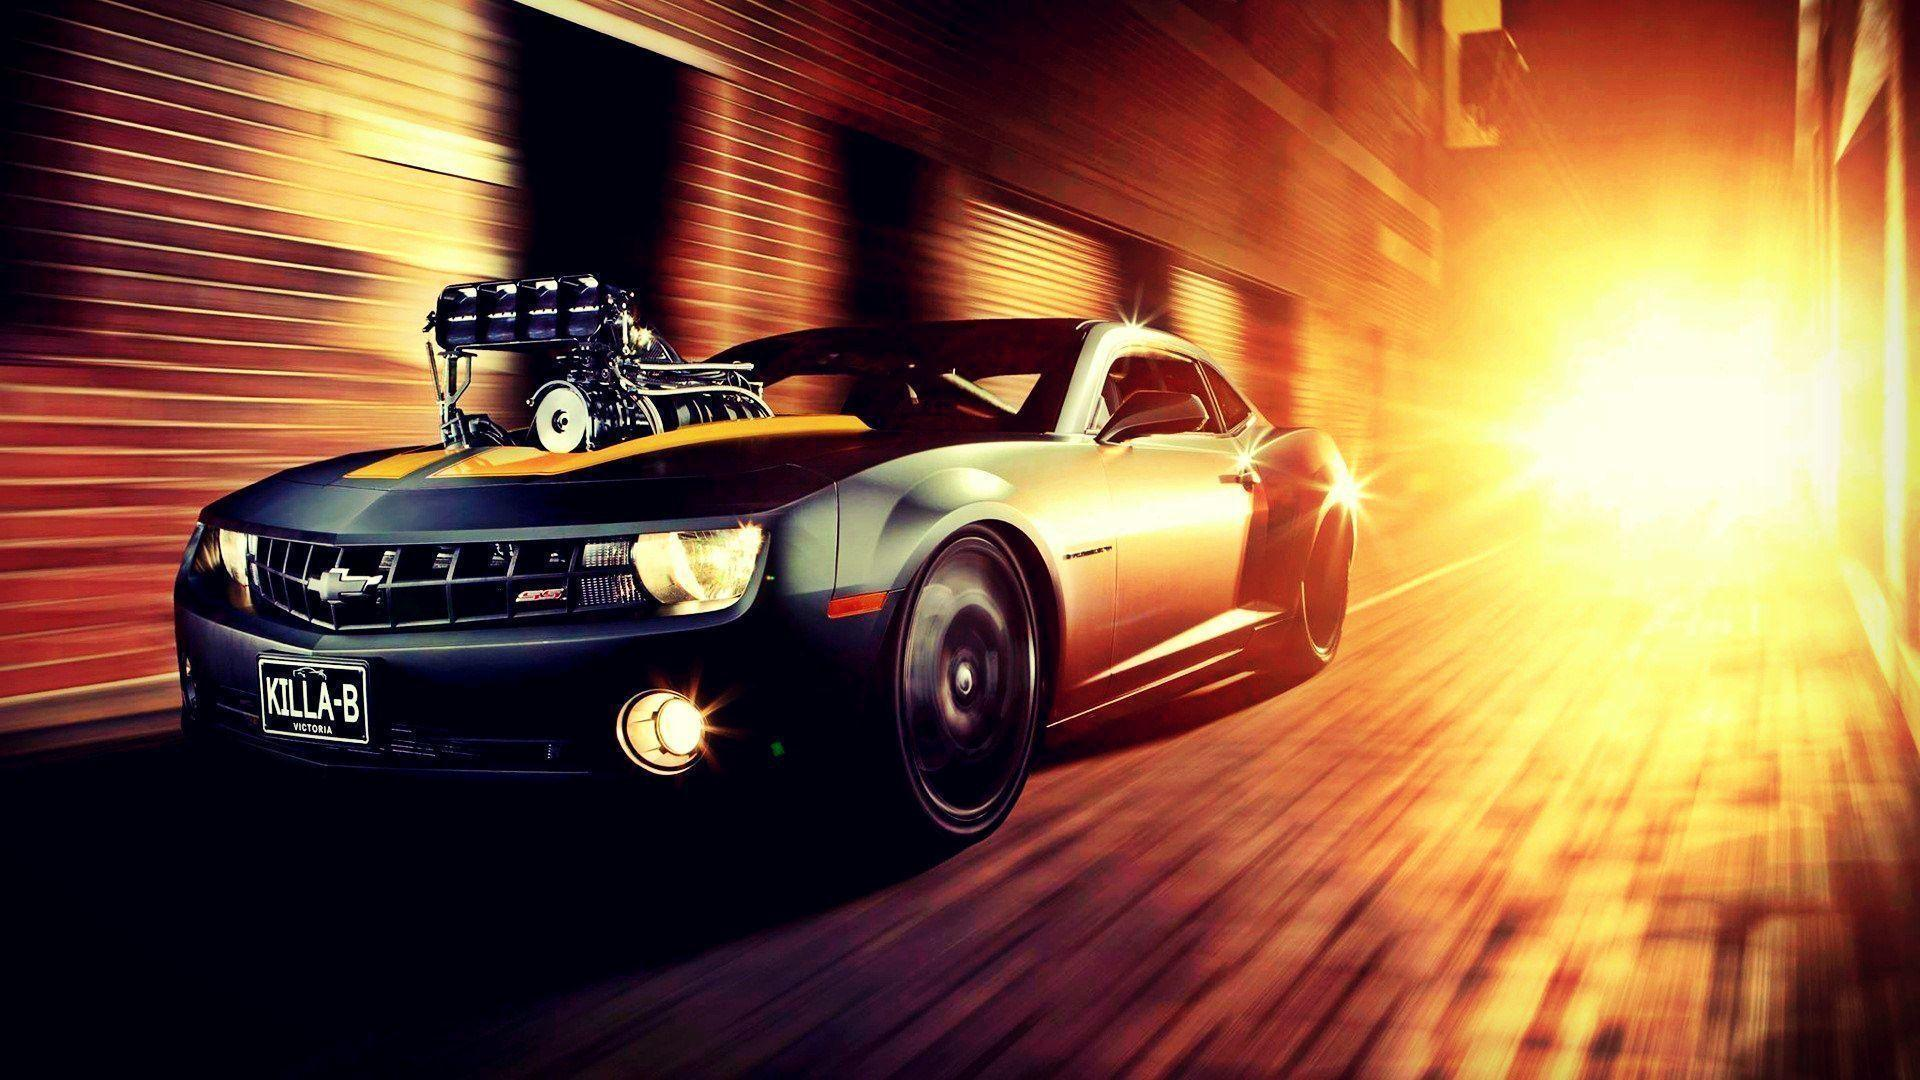 Cool HD Wallpapers Of Car · Cool Car Wallpapers | Best Desktop ...